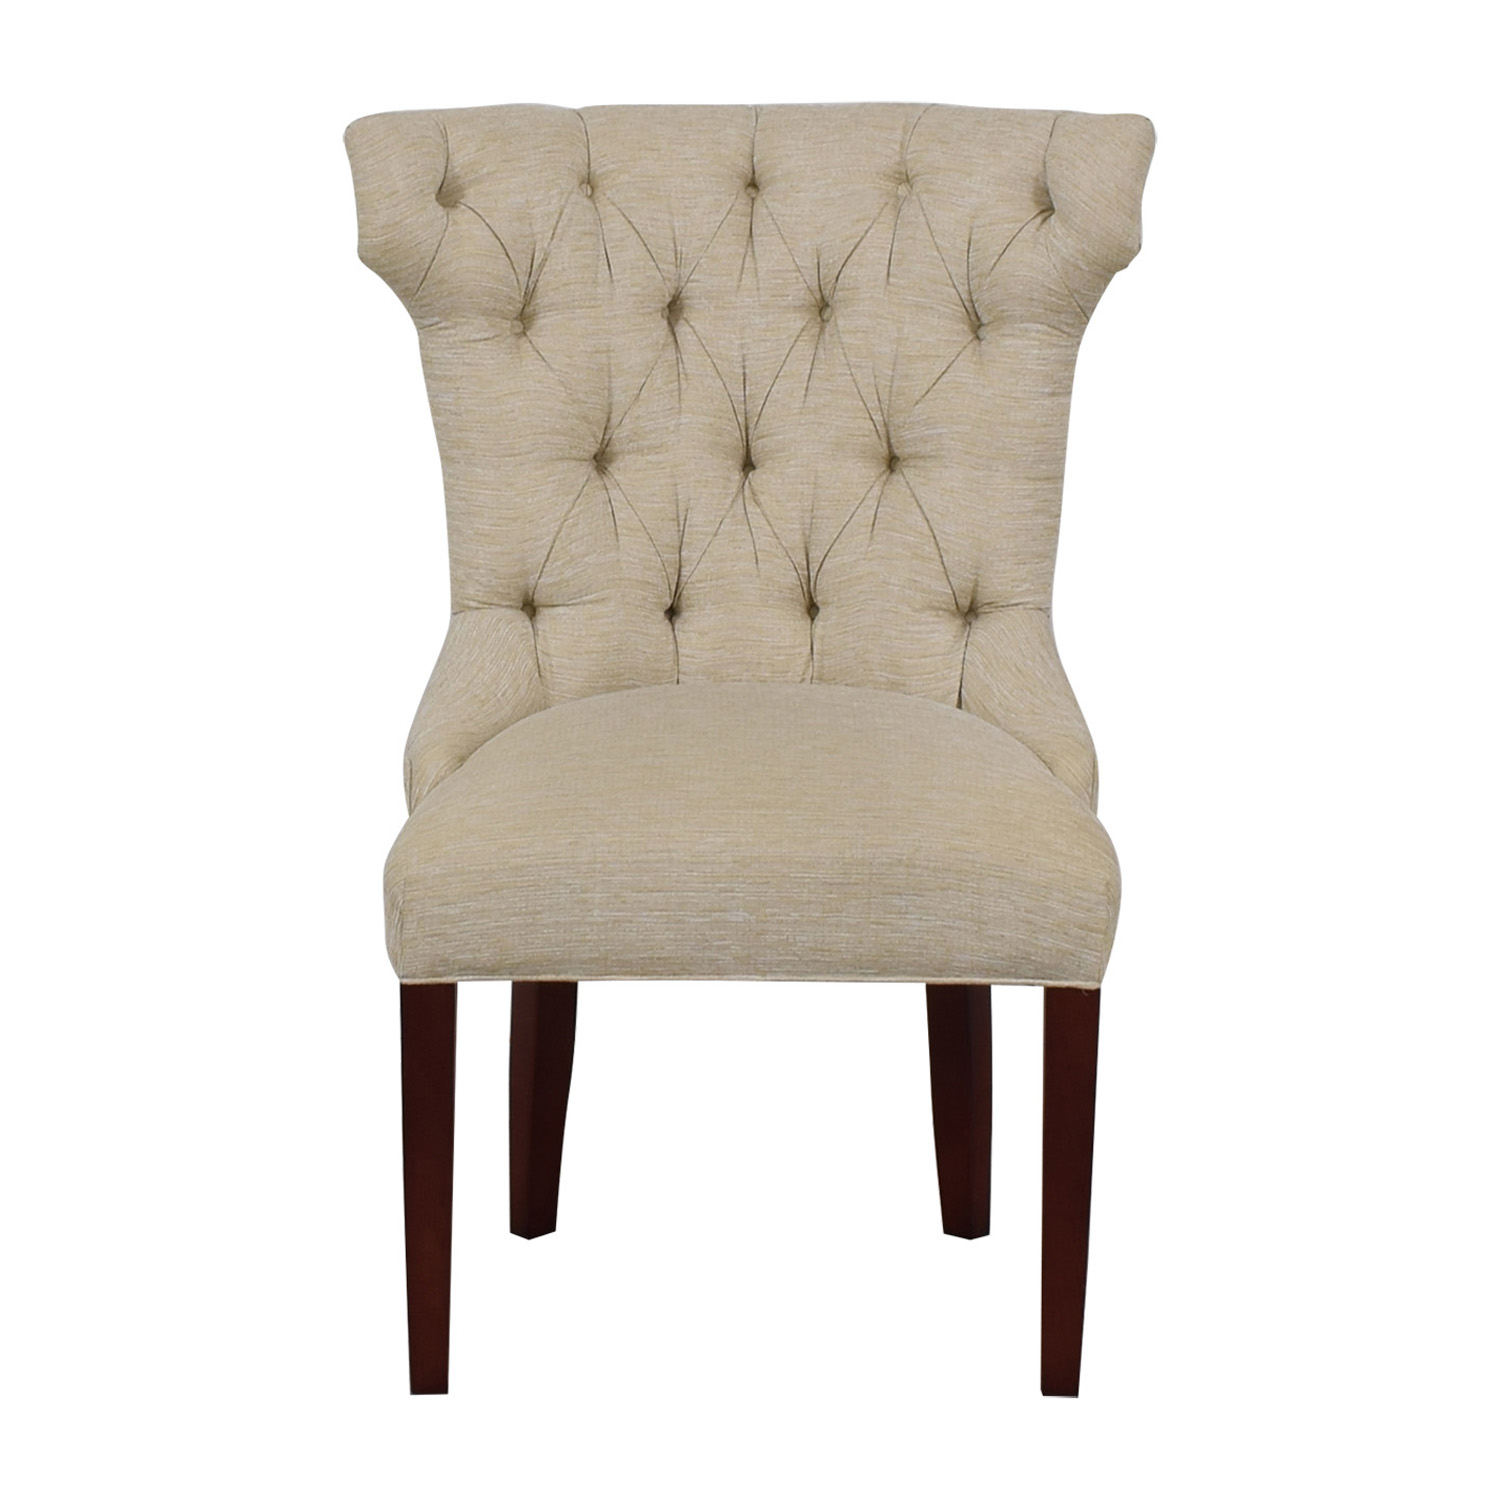 Cream Tufted Accent Chair second hand